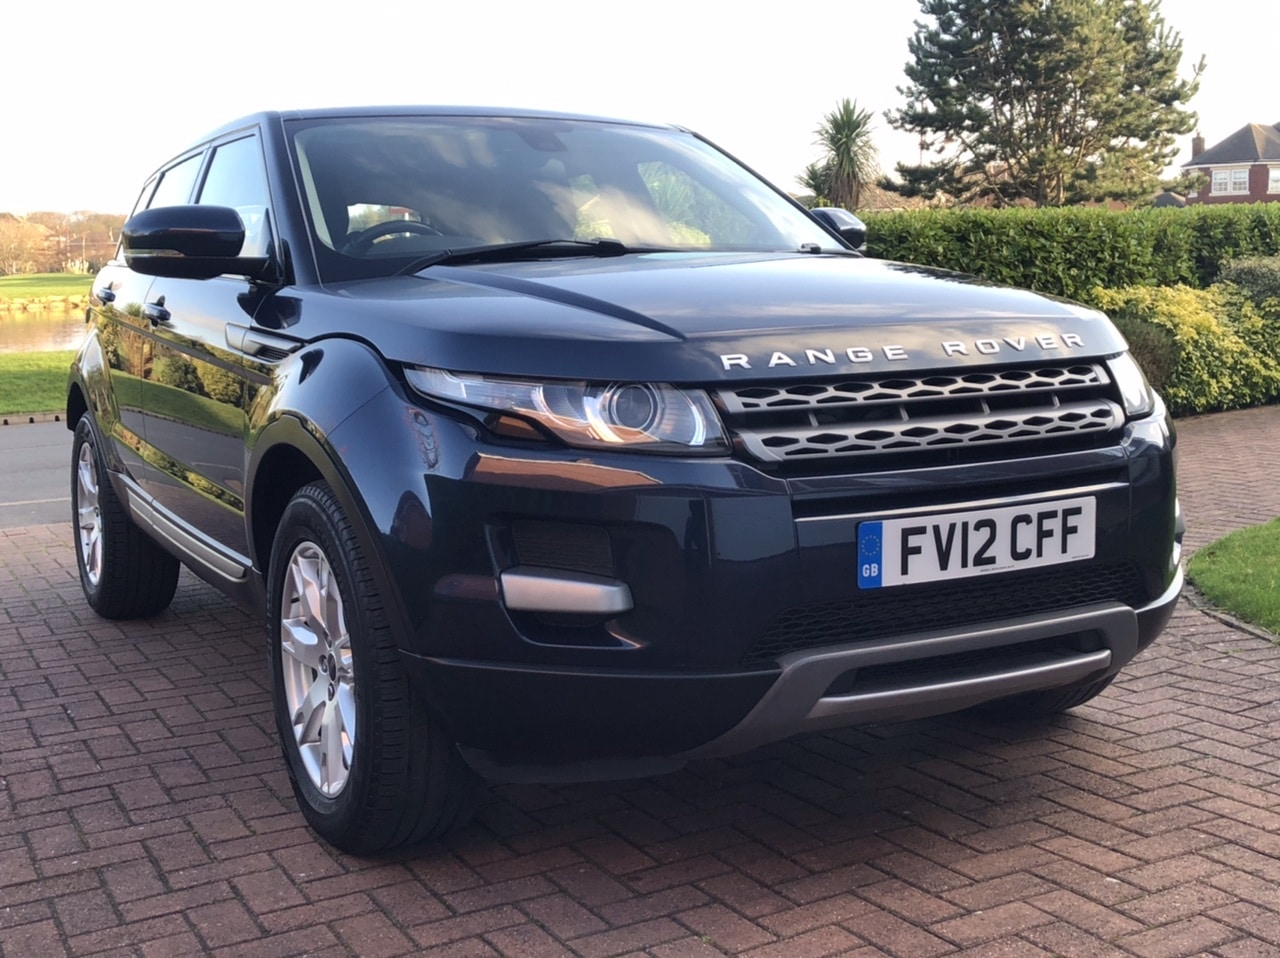 2012 12 LAND ROVER RANGE ROVER EVOQUE 2.2 SD4 190BHP PURE 5 DOOR MANUAL